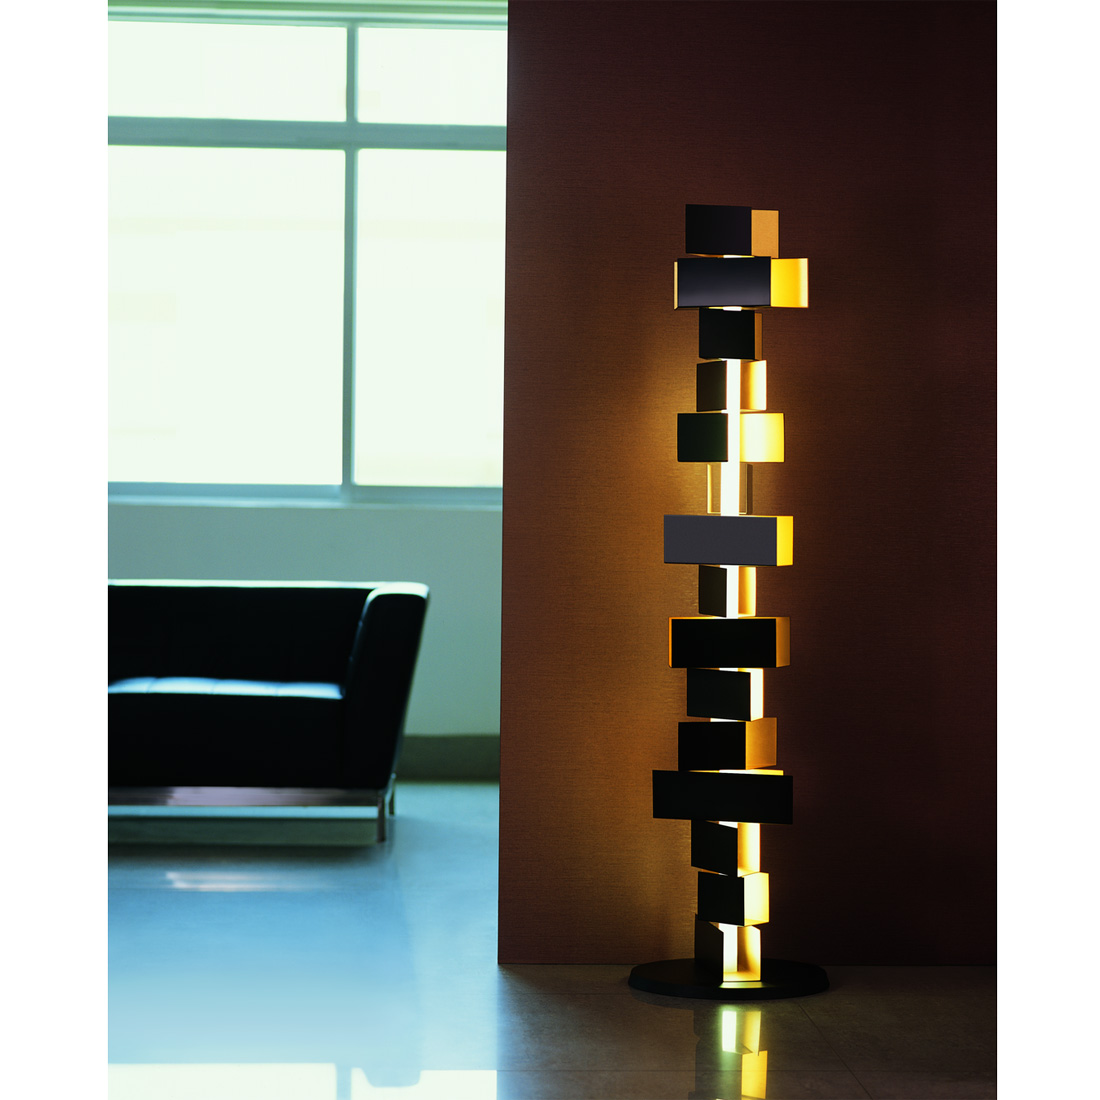 Designer Floor Lamps Gemma Stacked Block Floor Lamp From Fashion For Home